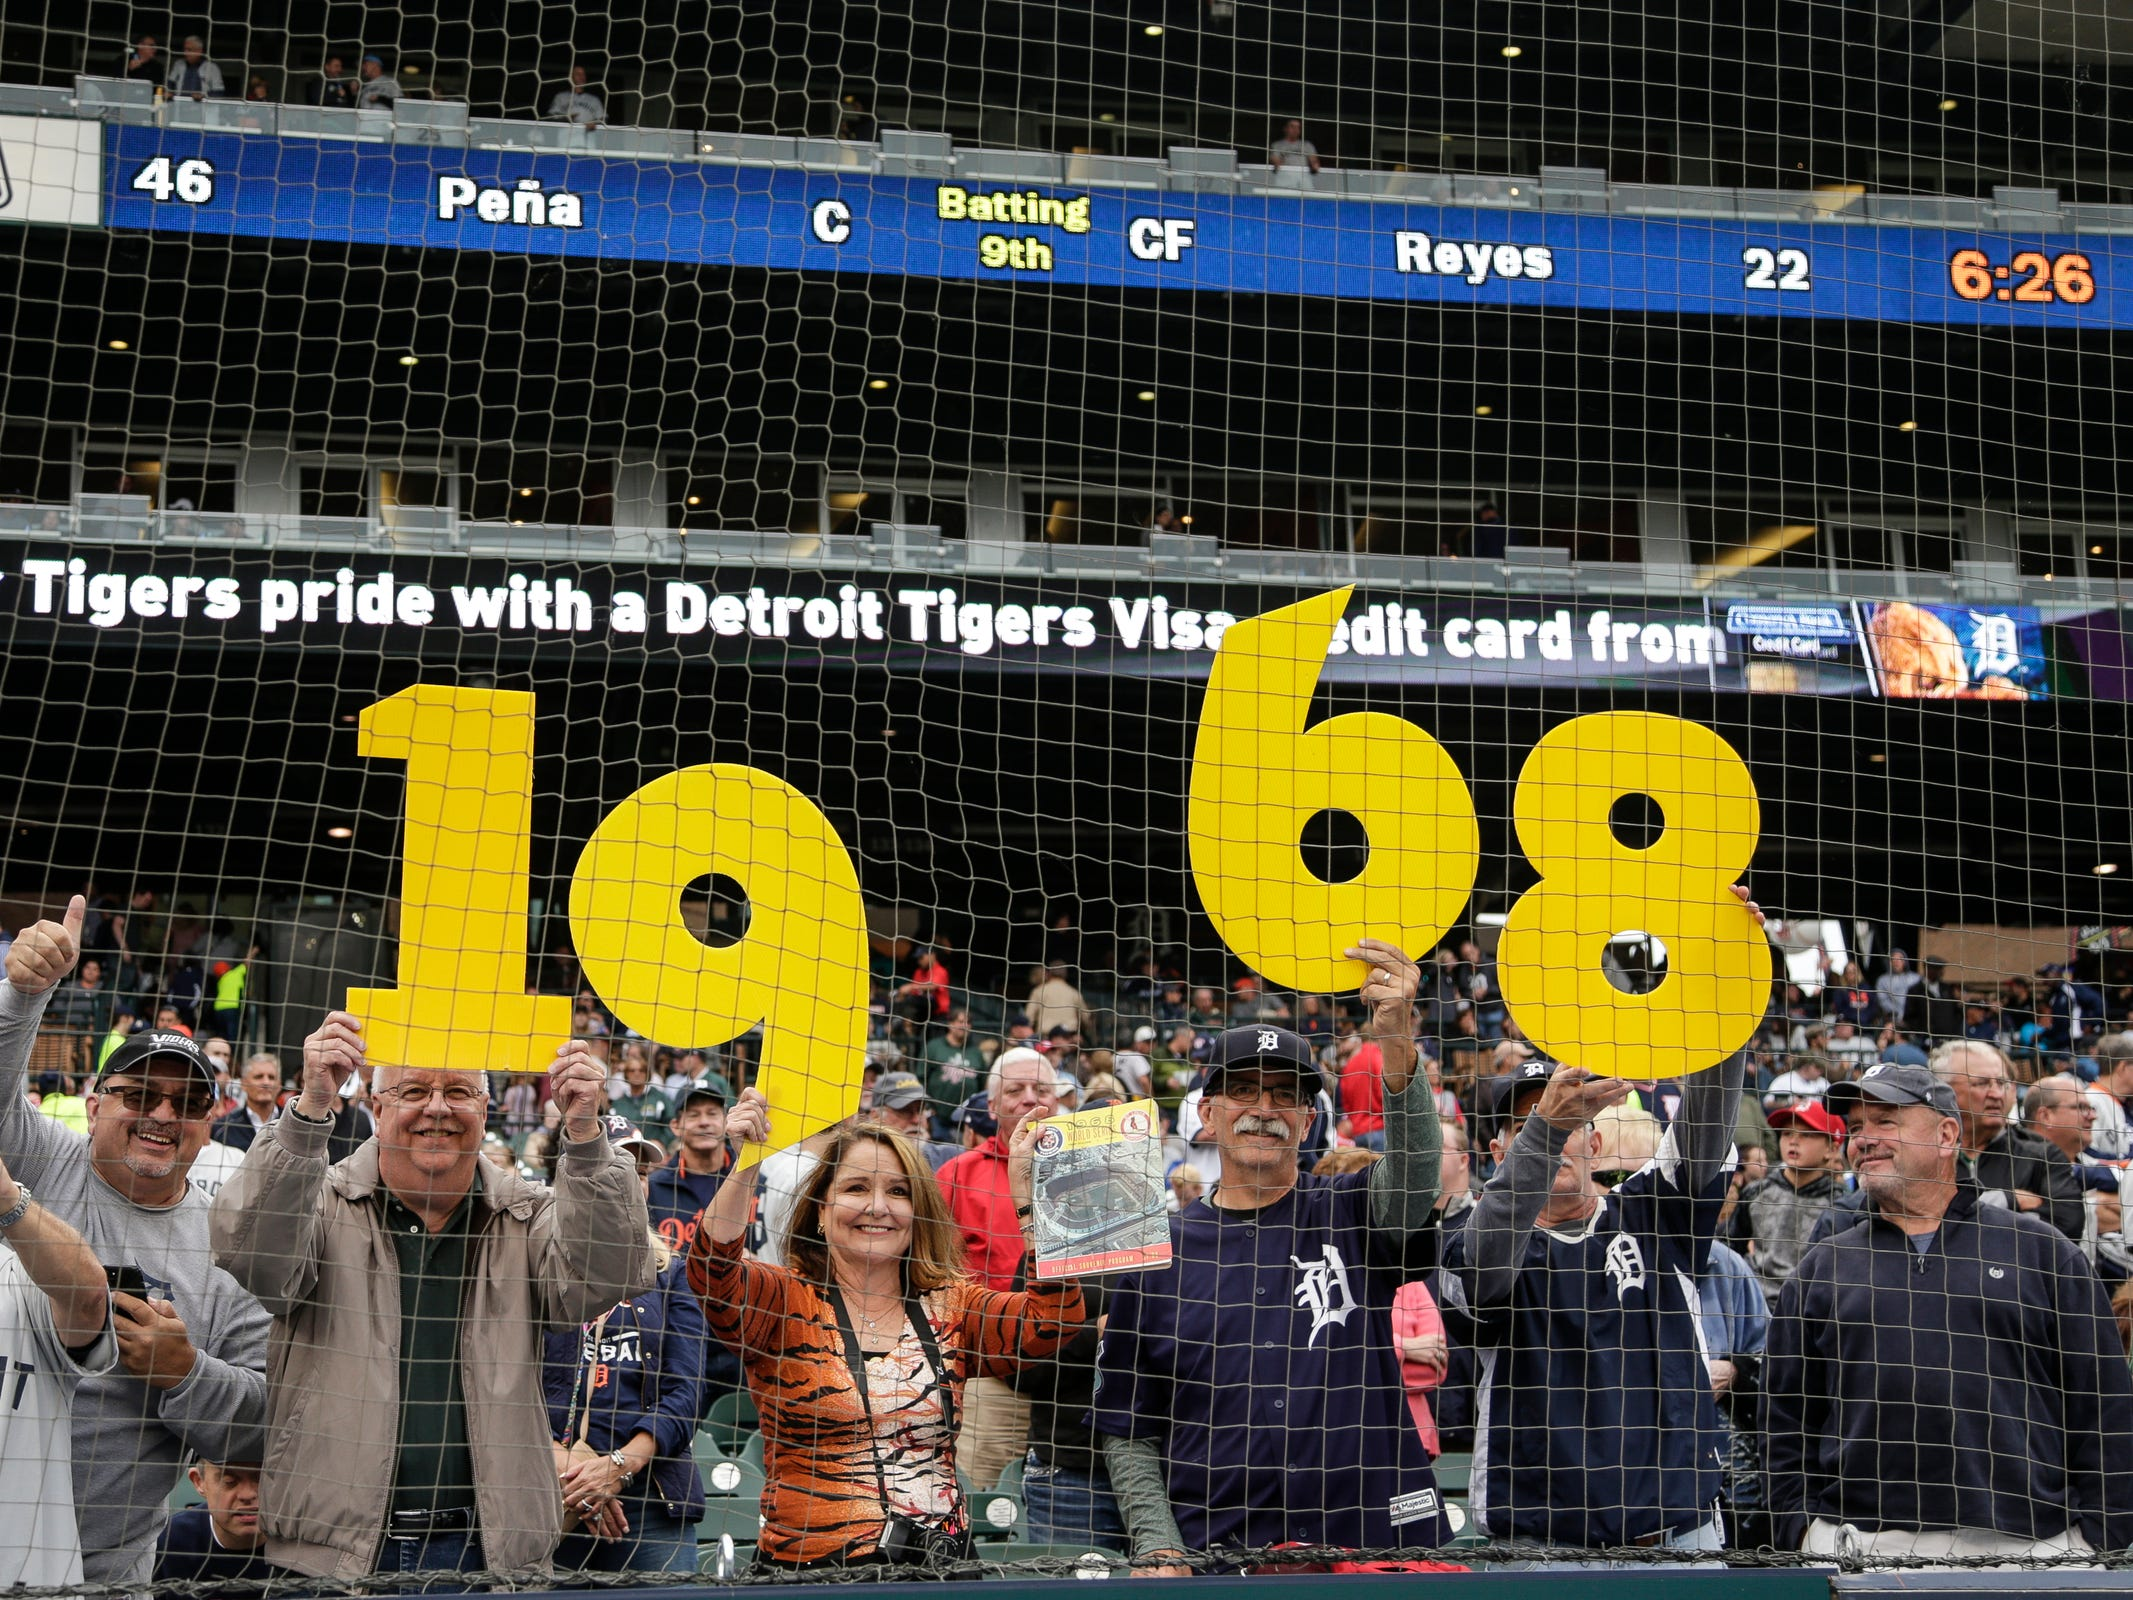 Fans hold 1968 sign as they cheer for the 1968 team during the Detroit Tigers celebration of the 50th anniversary of the 1968 World Series championship at Comerica Park in Detroit, Saturday, Sept. 8, 2018.